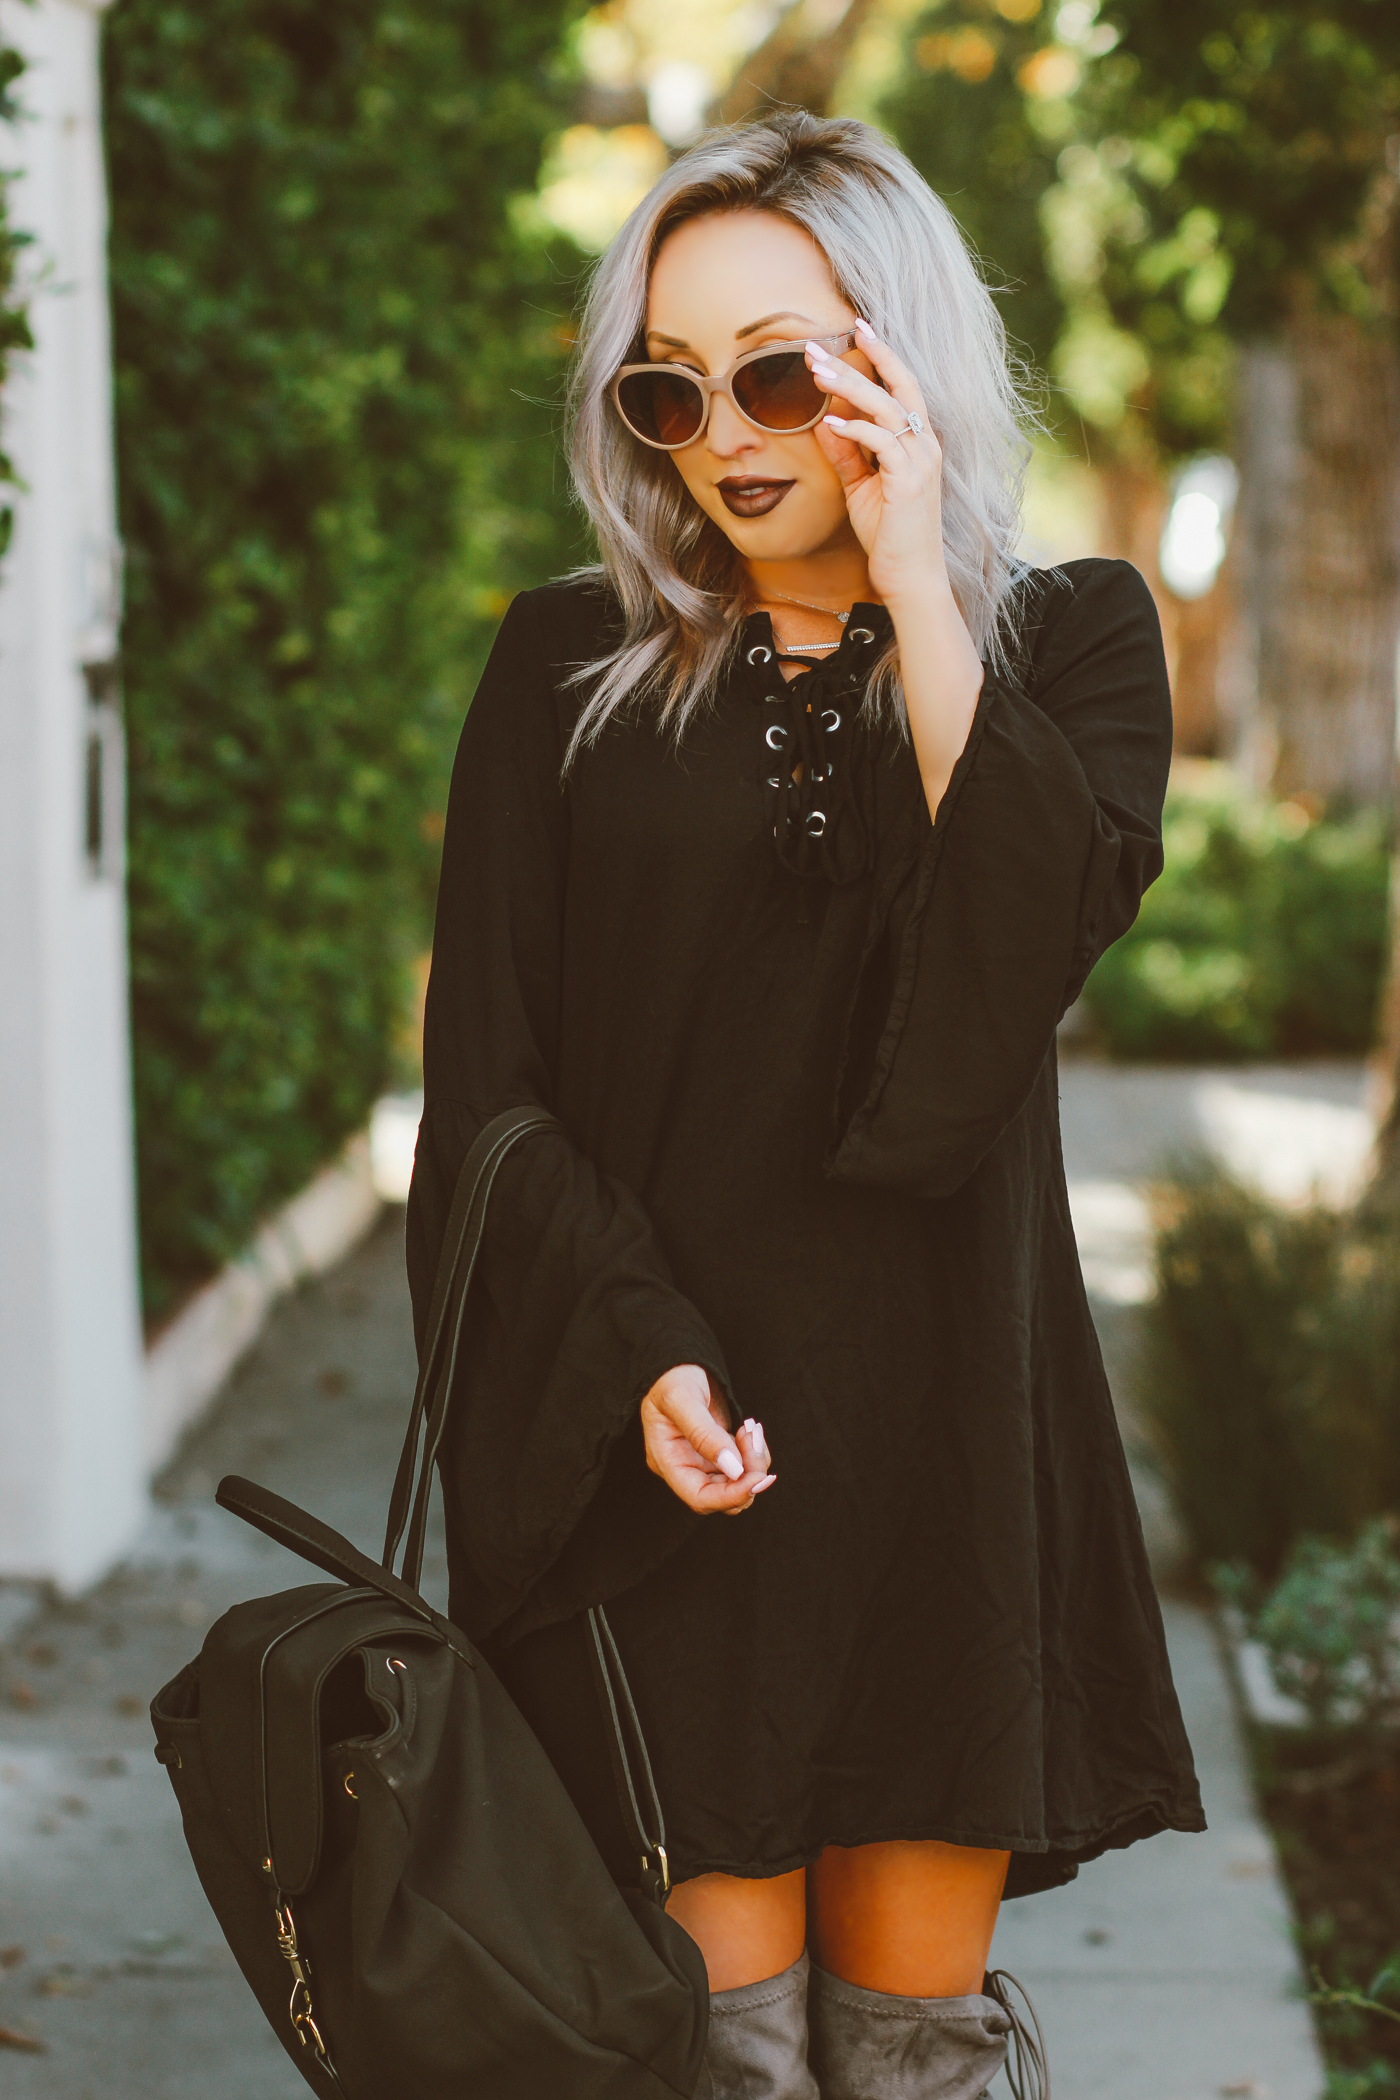 Blondie in the City | Black Bell Sleeve Dress @justfabonline | Suede Thigh High Boots @shoedazzle | Fall Fashion